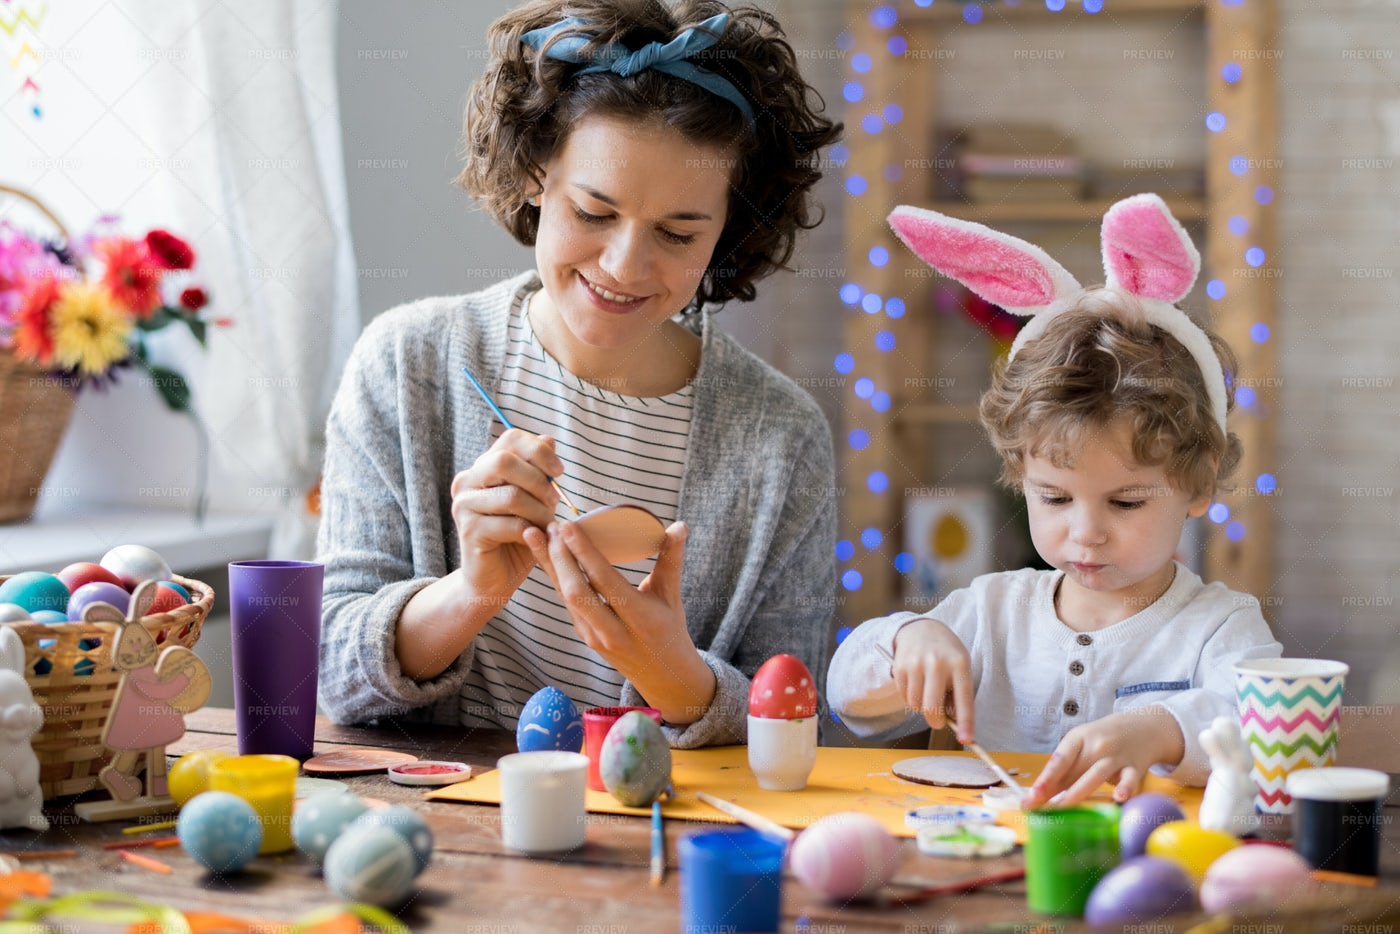 Family Repairing For Easter: Stock Photos